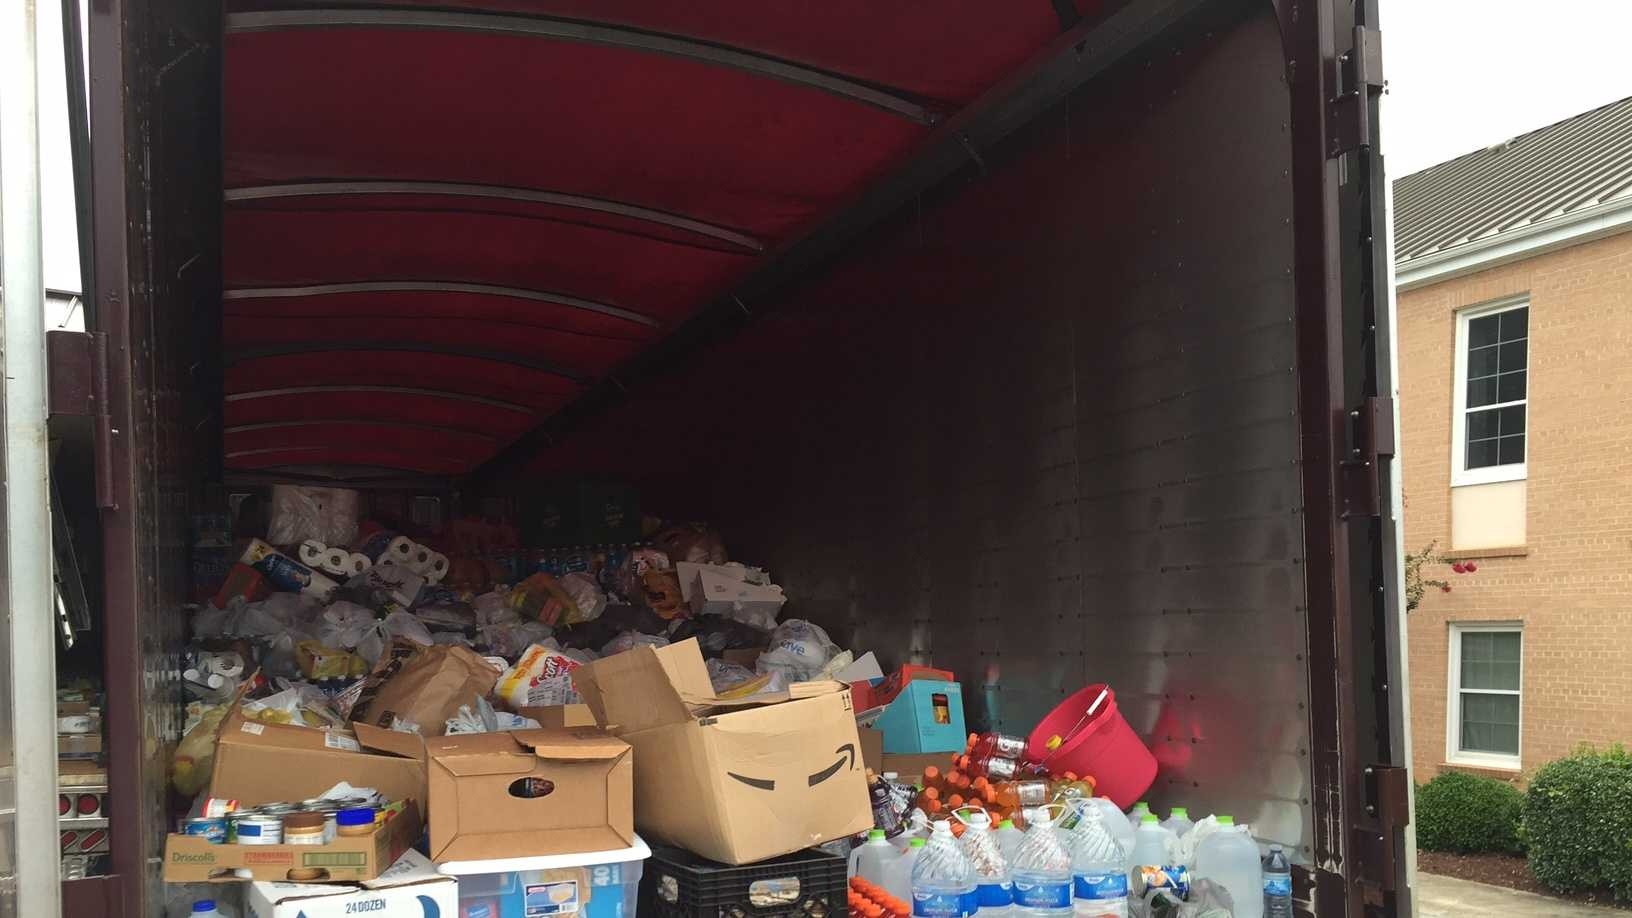 Volunteers filled two 18-wheelers with donations for flood victims in Louisiana.